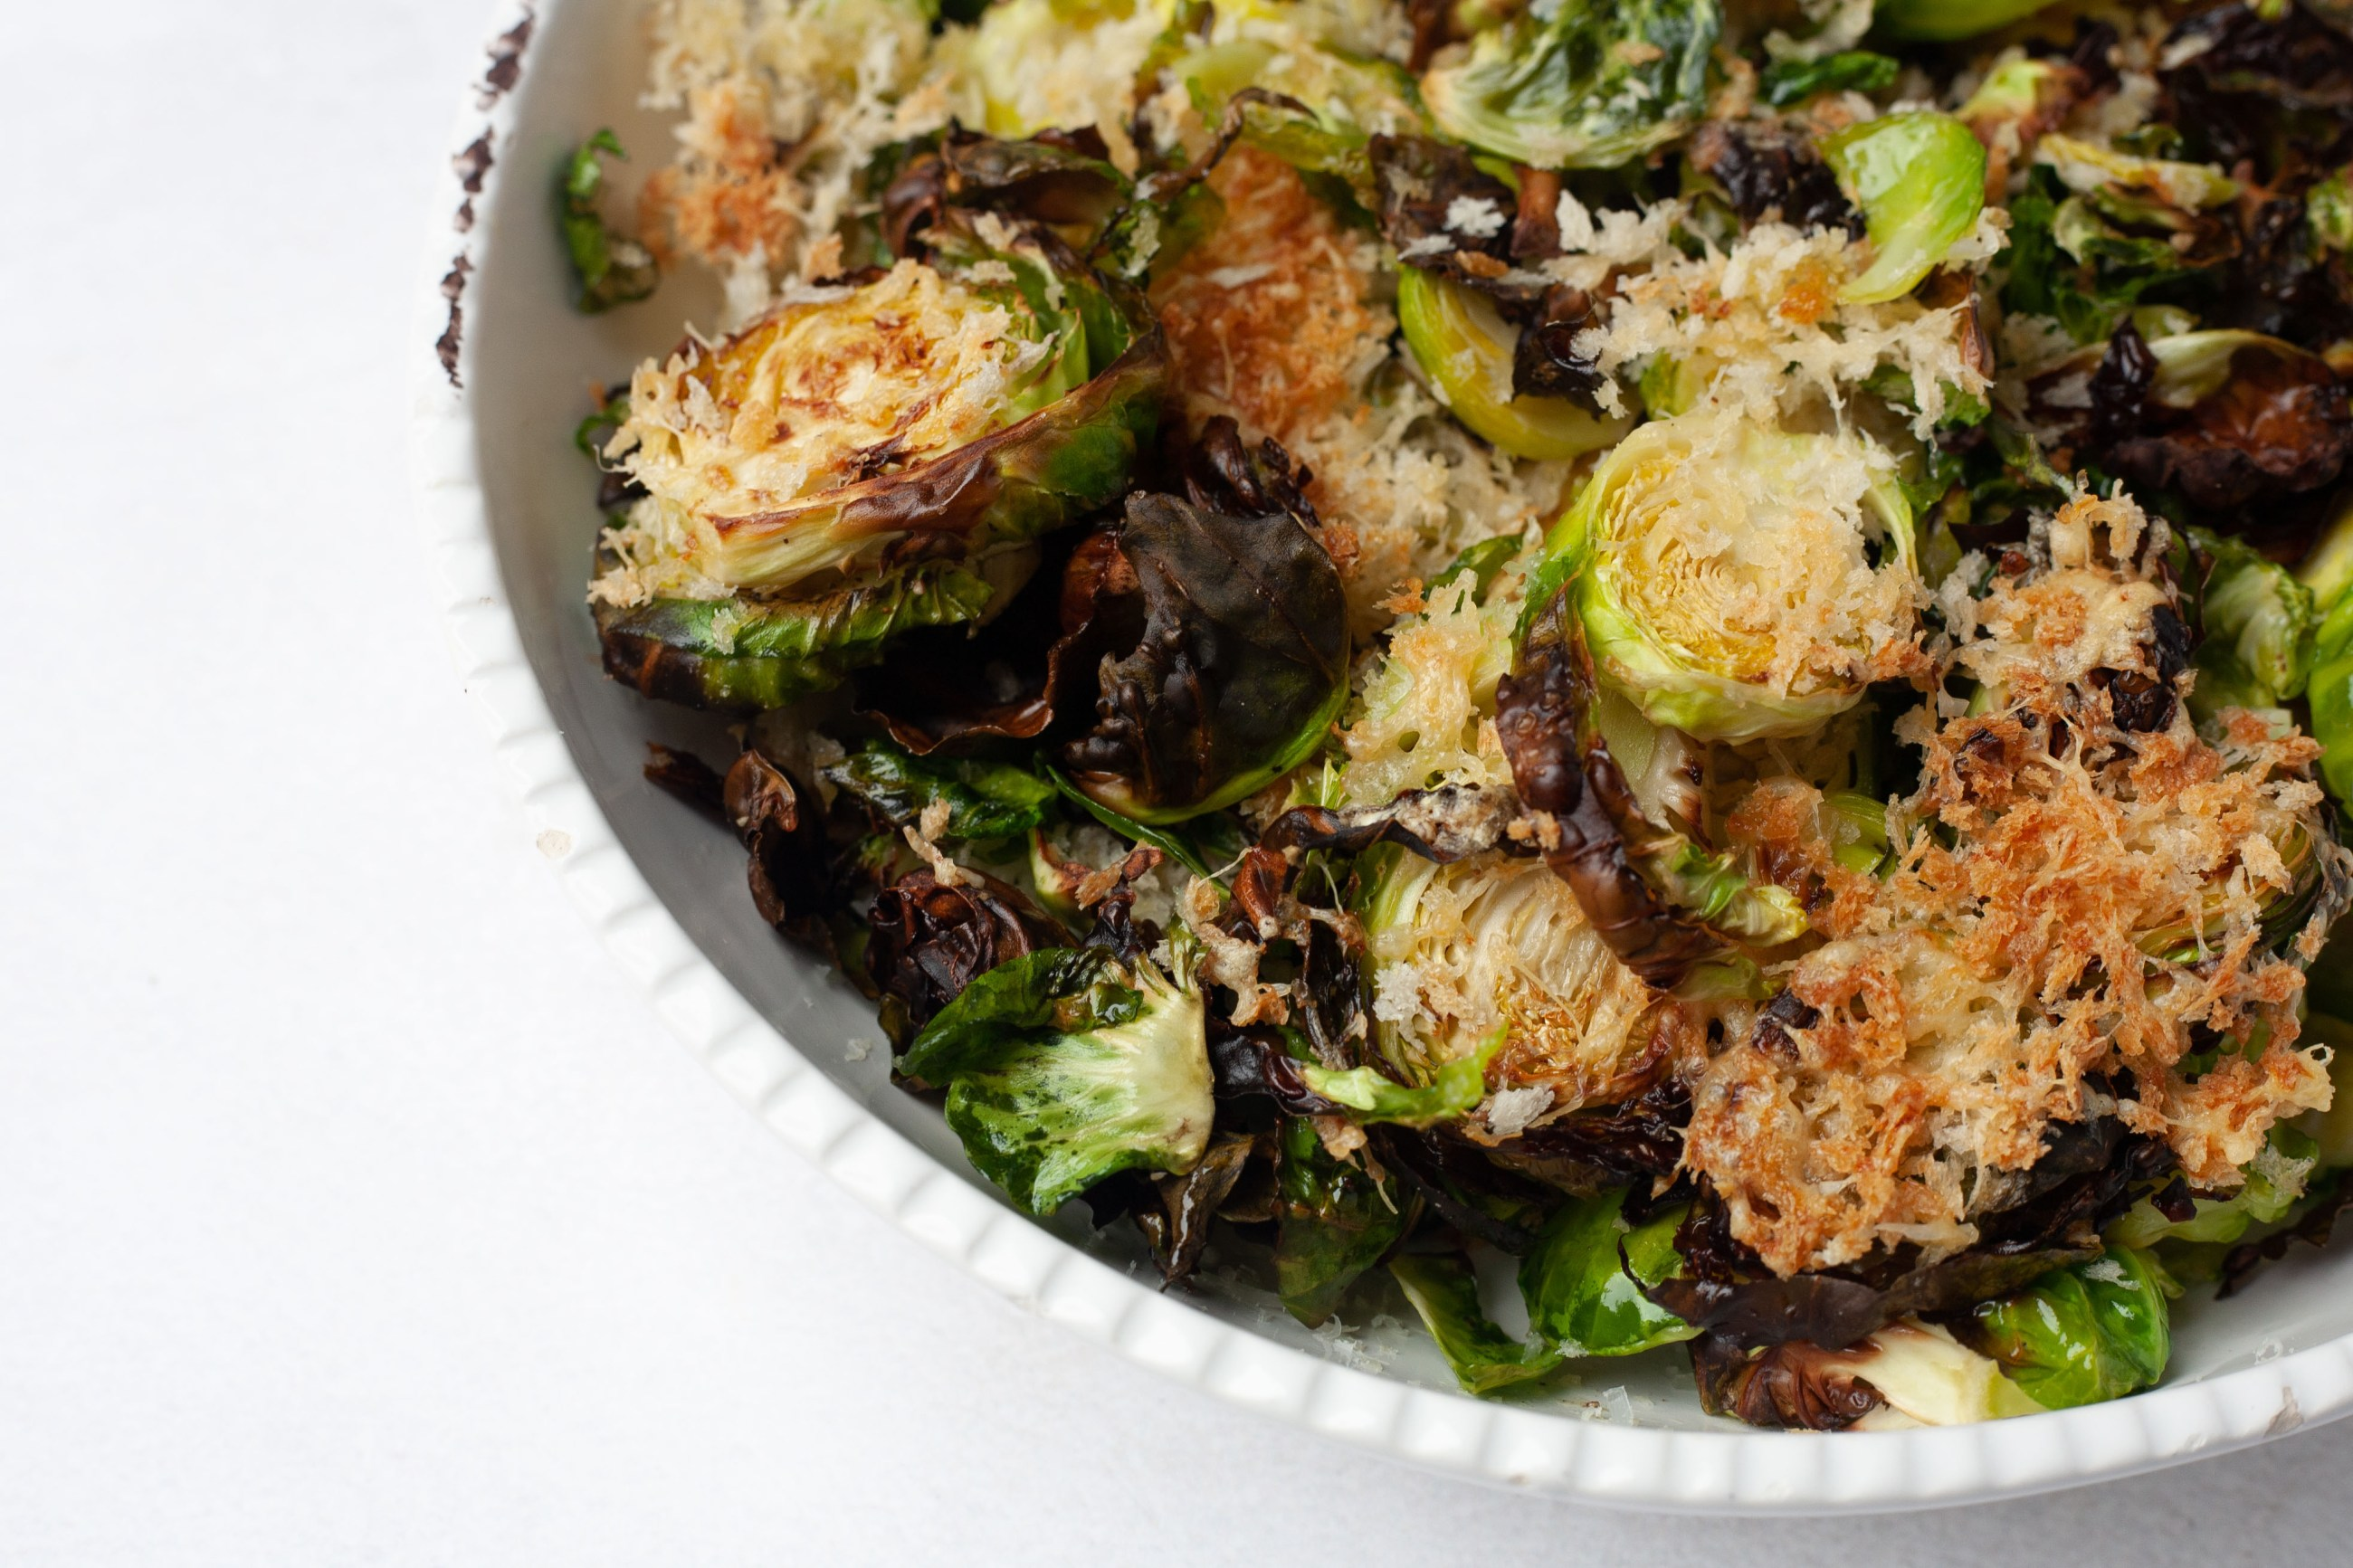 brussels sprouts air fryer recipe close up